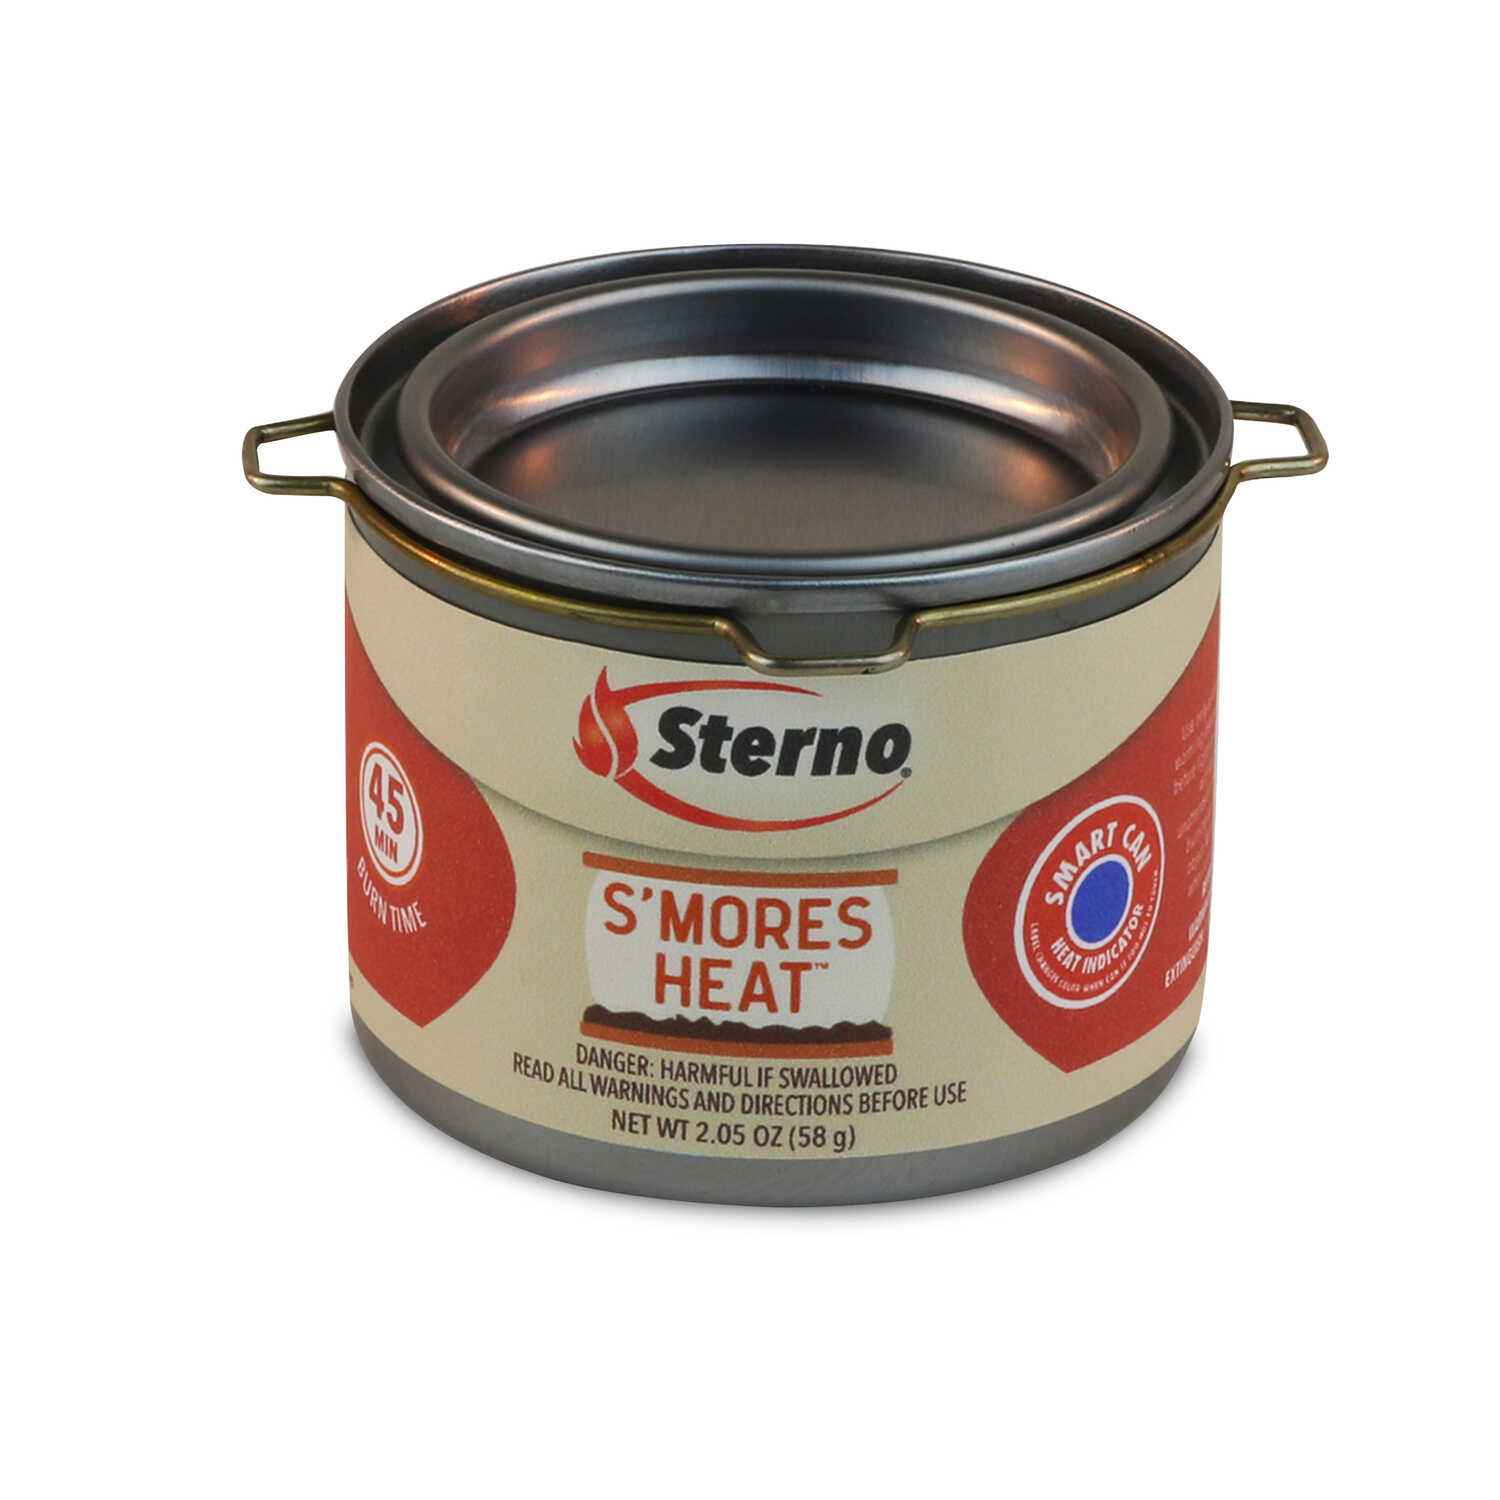 Sterno  S'MORES HEAT  Cooking Fuel  3.78 in. H x 2.50 in. W x 2.50 in. L 2 pk